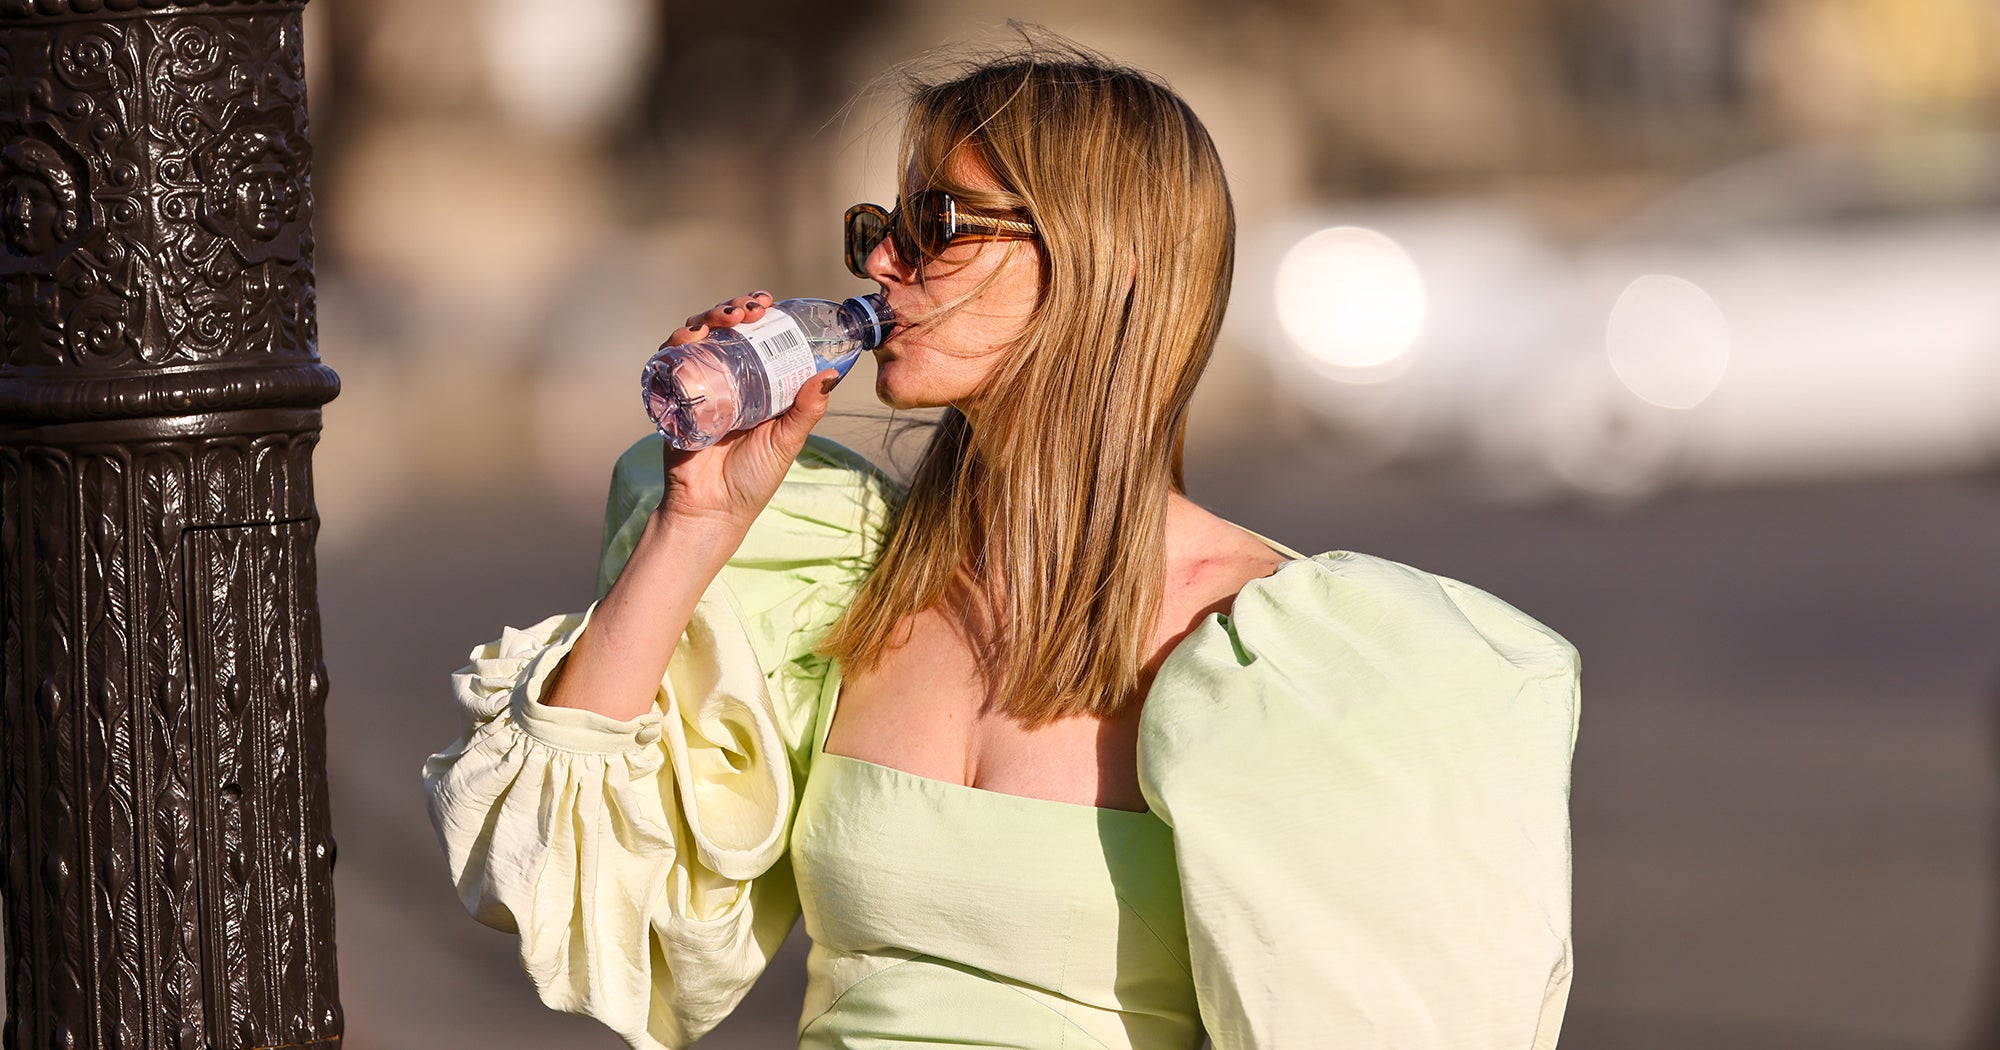 TikTok Says Drinking Chlorophyll Water Will Clear My Acne — Should I Try It?